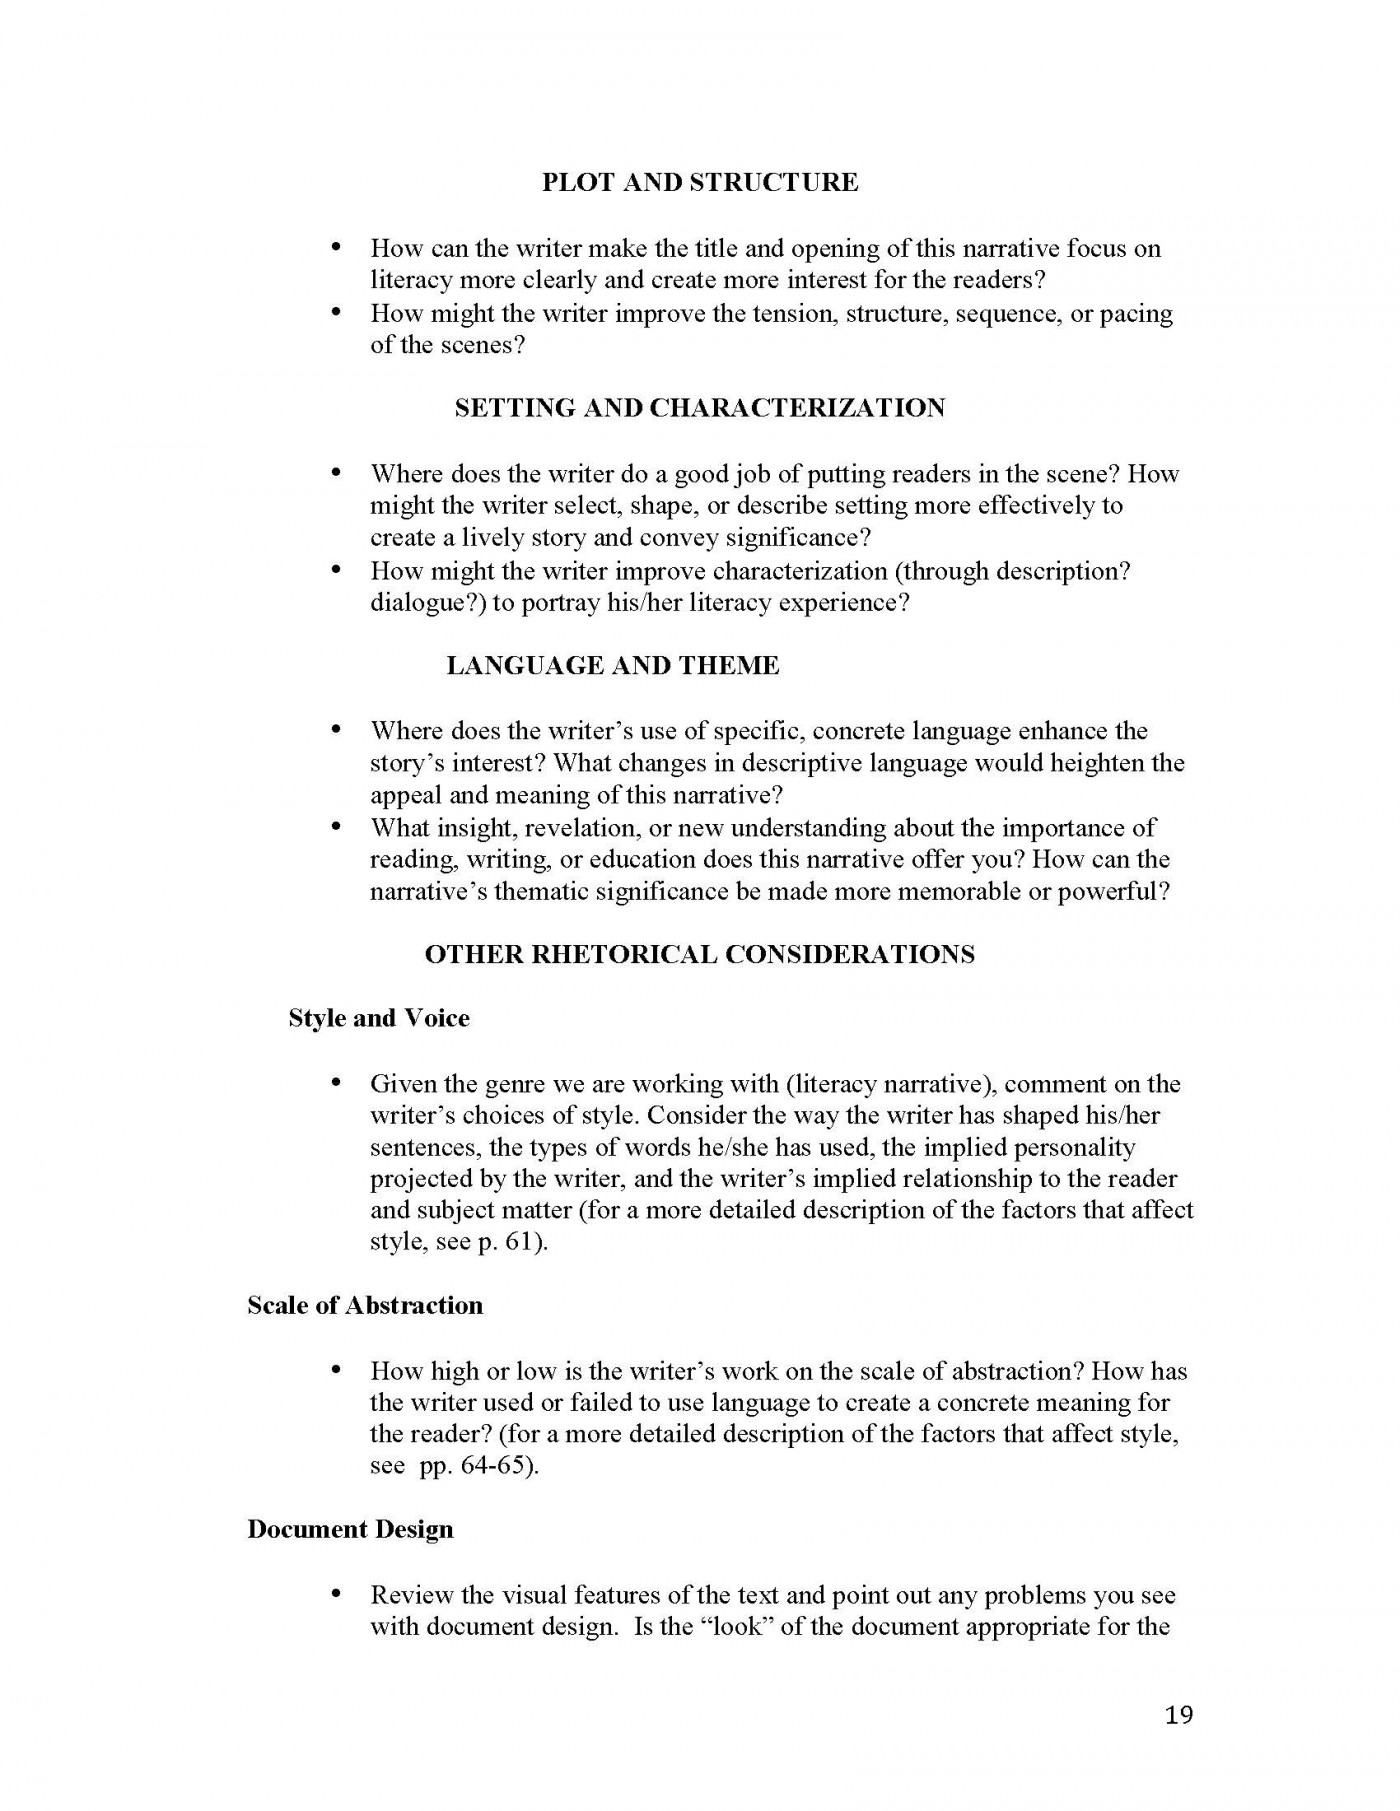 018 Unit 1 Literacy Instructor Copy Page 19 Essay Example Writing Amazing A Narrative About Being Judged Quizlet Powerpoint 1400